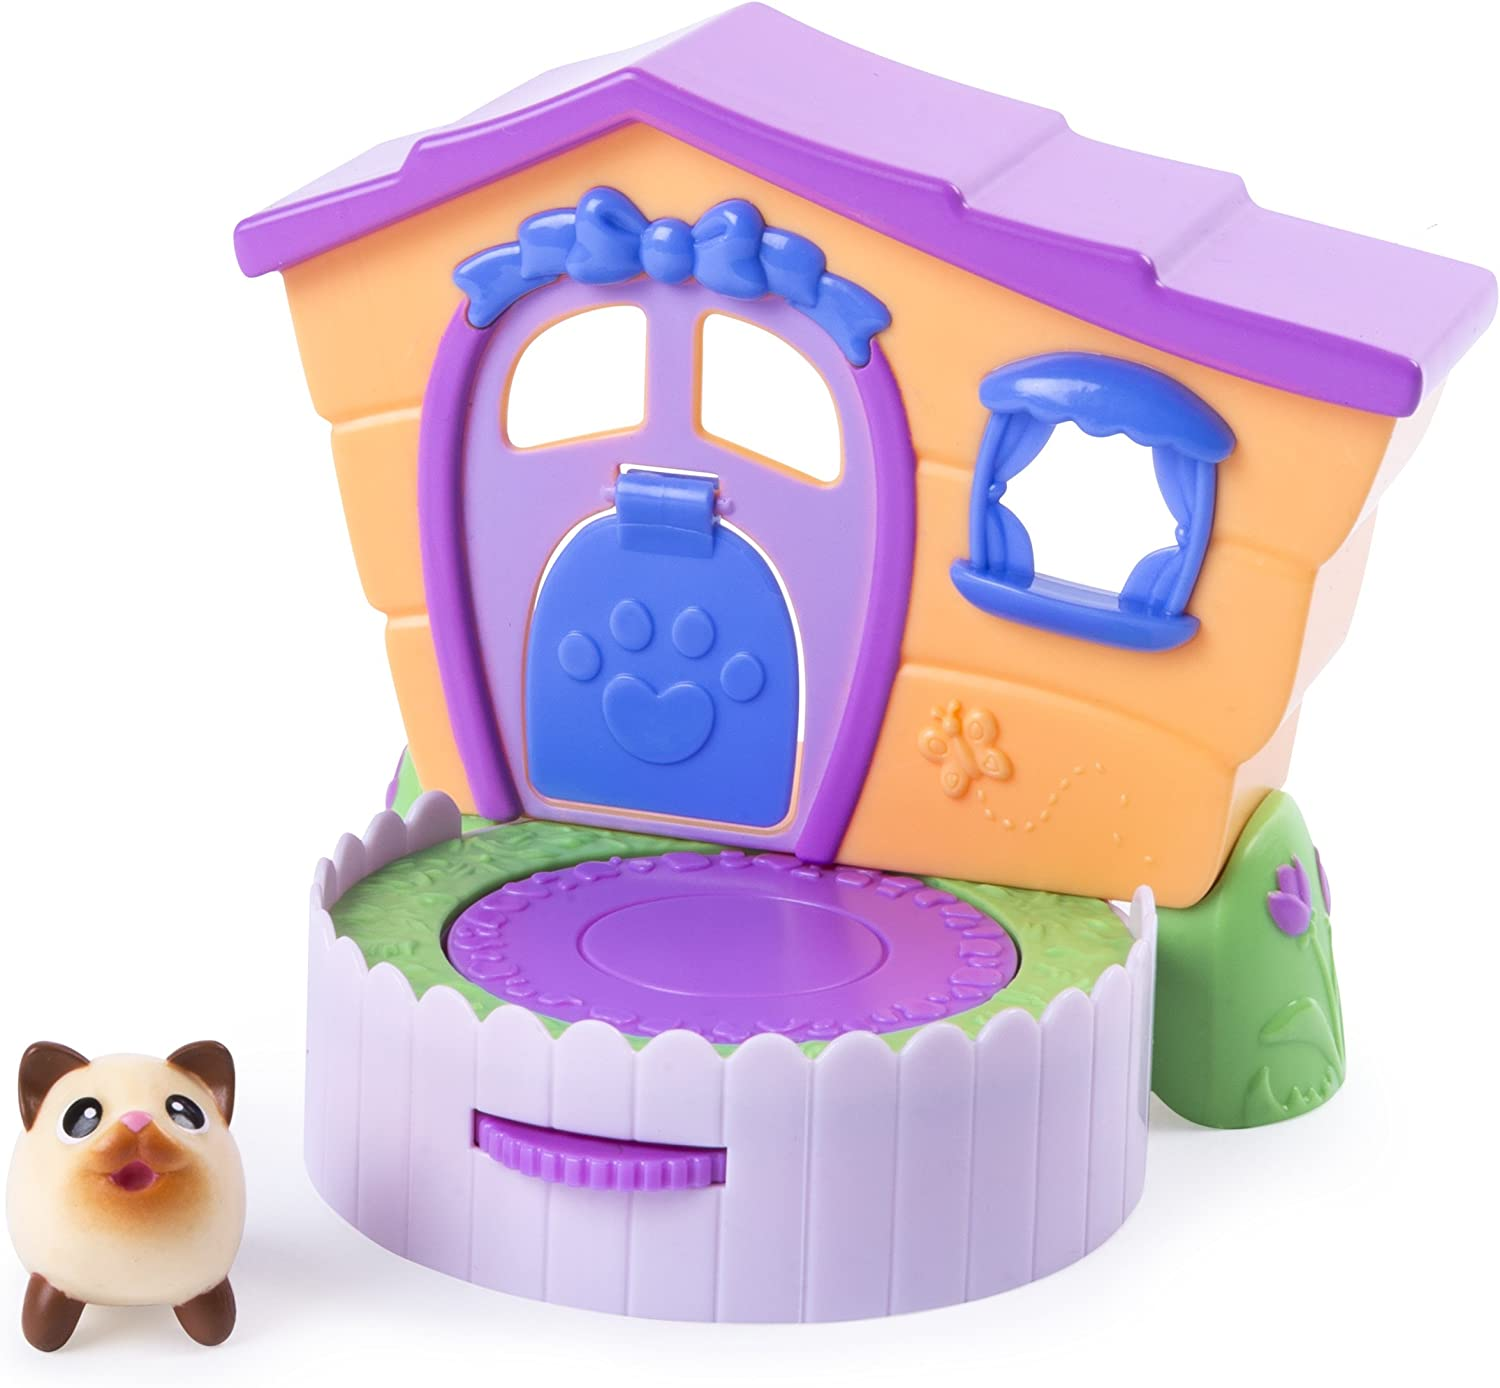 Chubby Puppies & Friends – 2-in 1 Flip N' Play House Playset with Siamese Kitty Collectible Figure